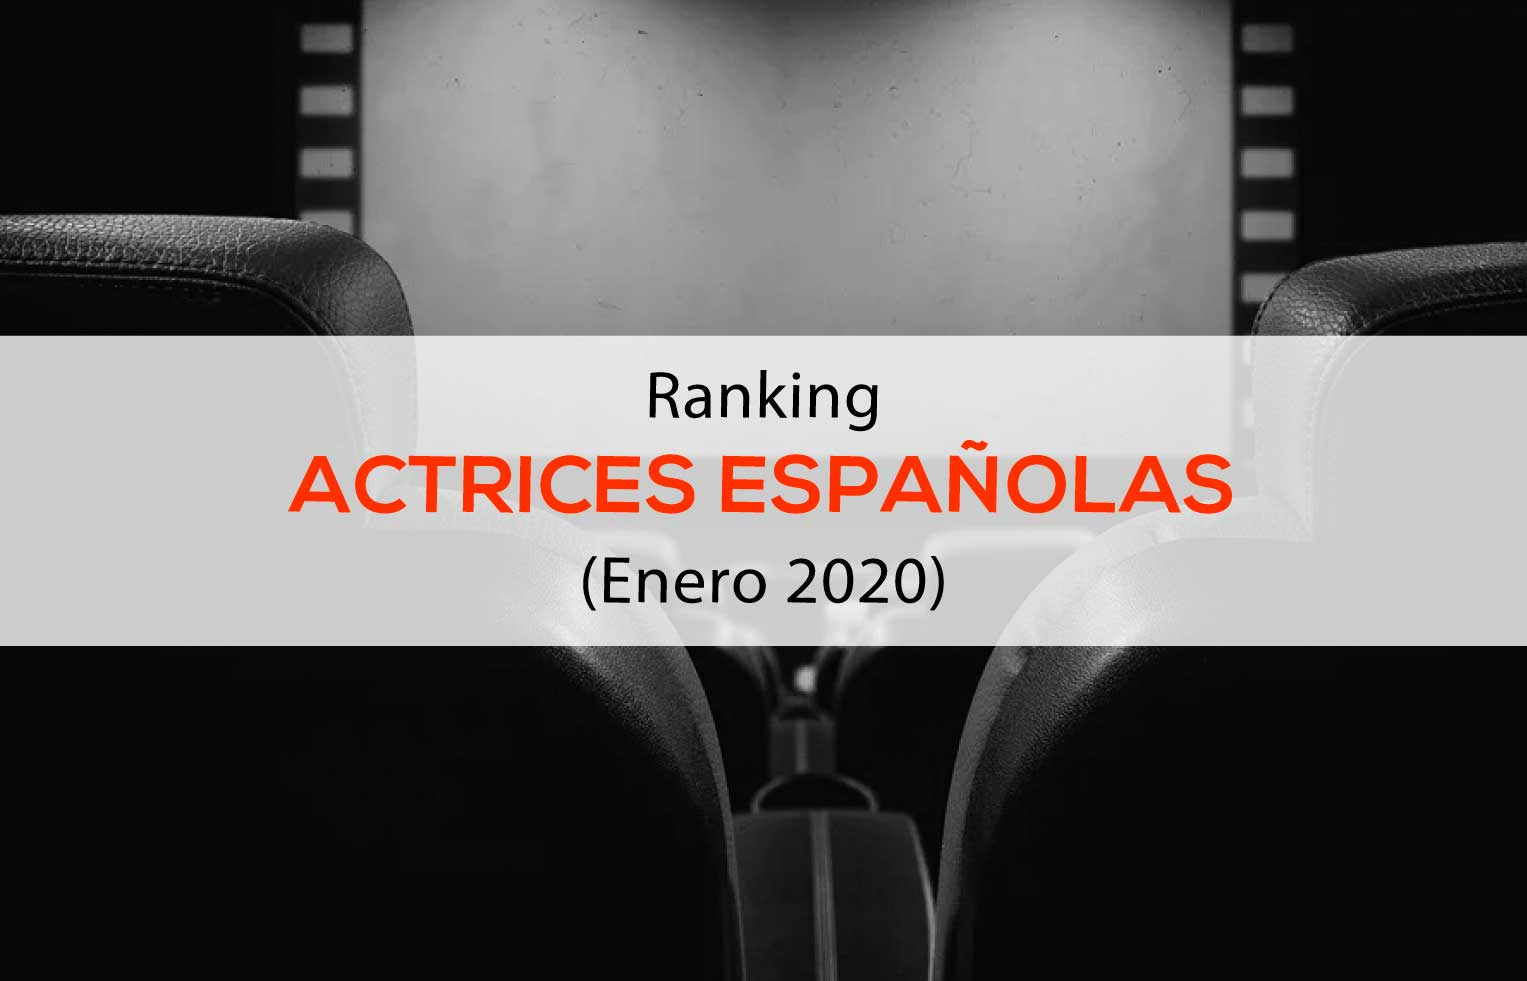 Ranking de Actrices Españolas influencers